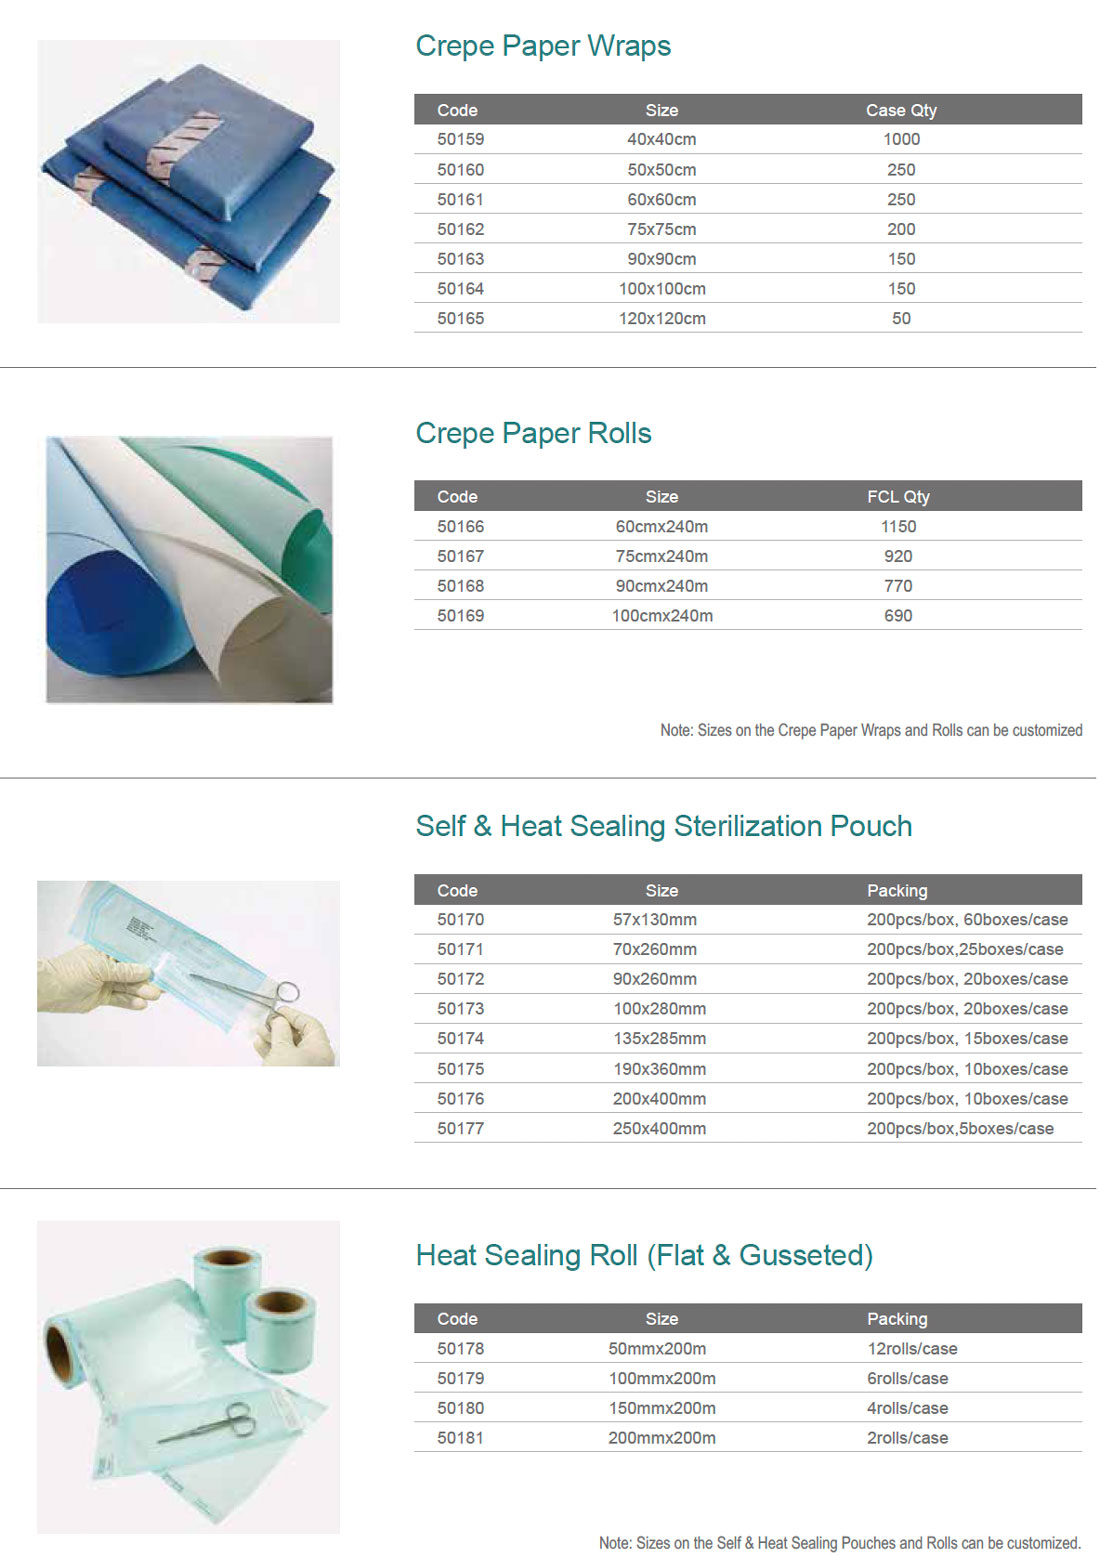 Crepe Paper & Pouch & Roll| Sterilization Packagings - Medical Group Care